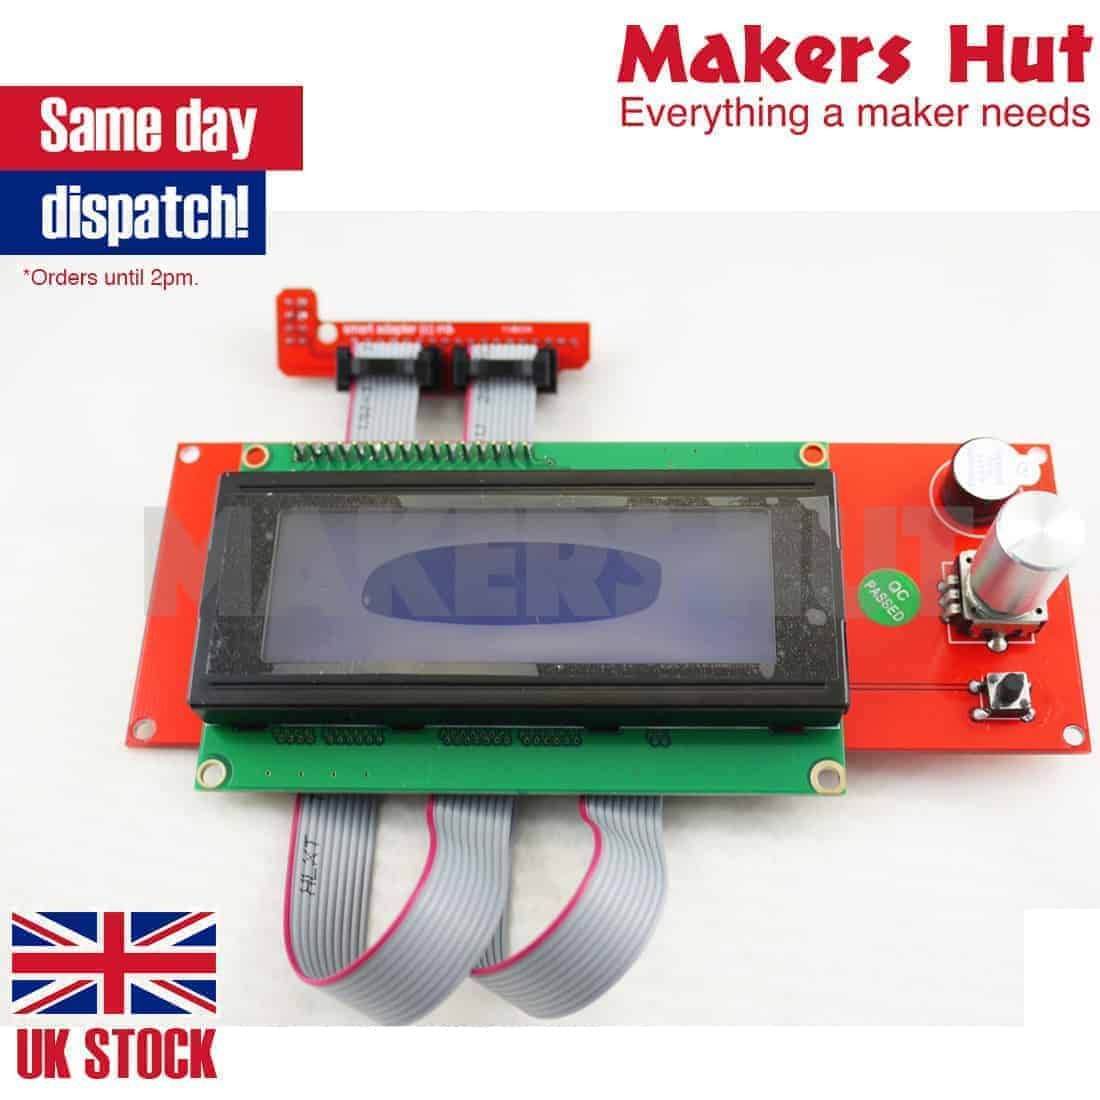 2004 Lcd Controller With Sd Card Slot For Ramps 14 Reprap 3d Diy Printer Connections Of 1 4 Display